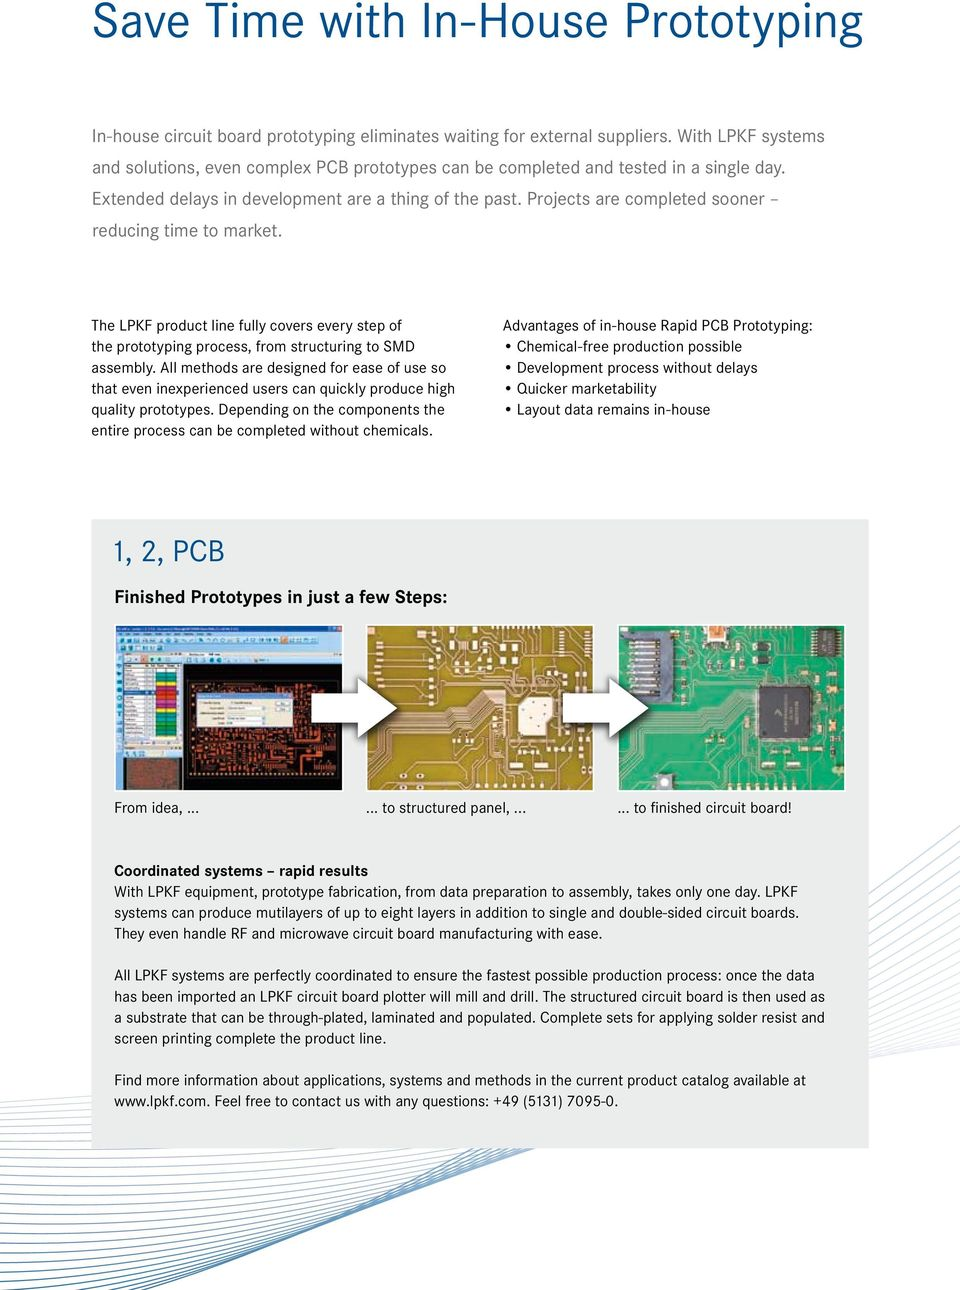 Get Pcb Prototypes Sooner With In House Rapid Prototyping Pdf Printed Circuit Board Led Prototype Design Layout Services On Sale Projects Are Completed Reducing Time To Market The Lpkf Product Line Fully Covers Every